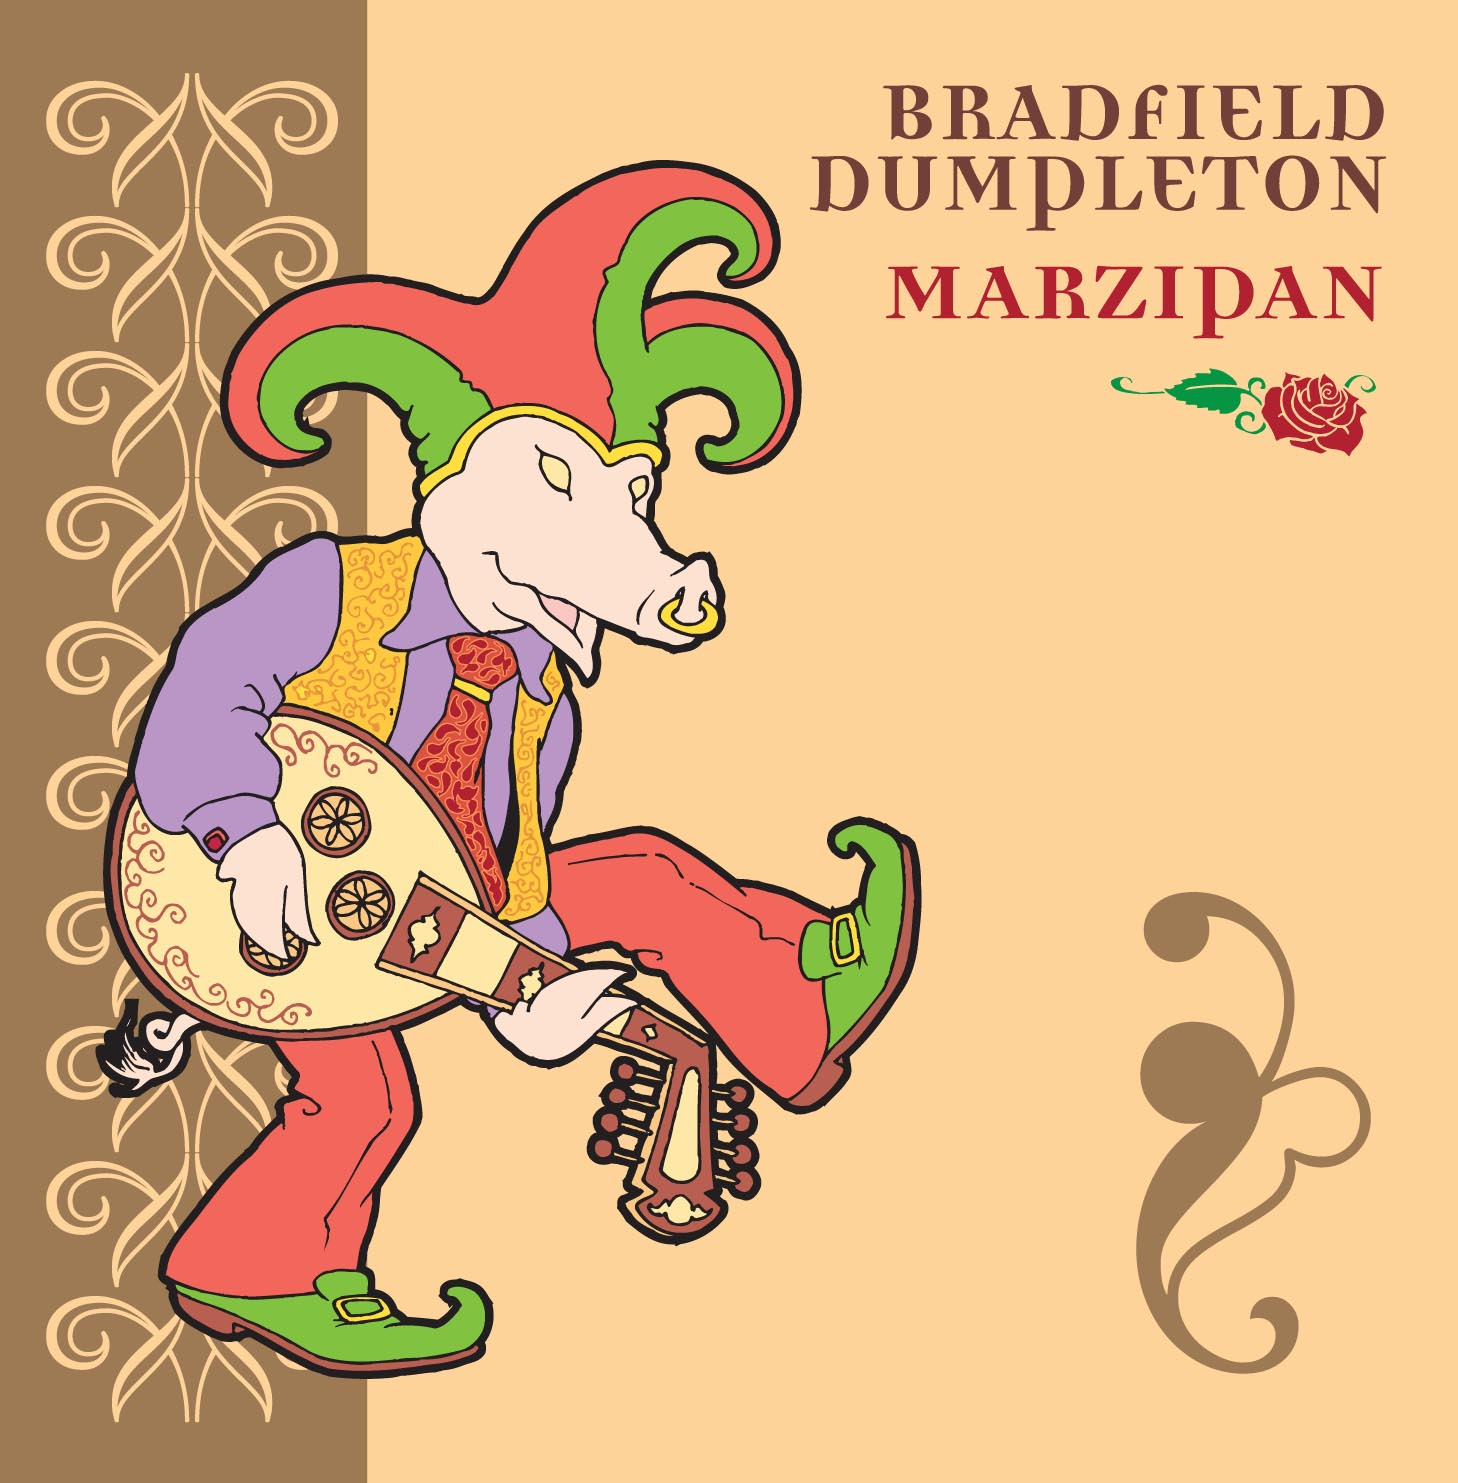 MARZIPAN COVER ART